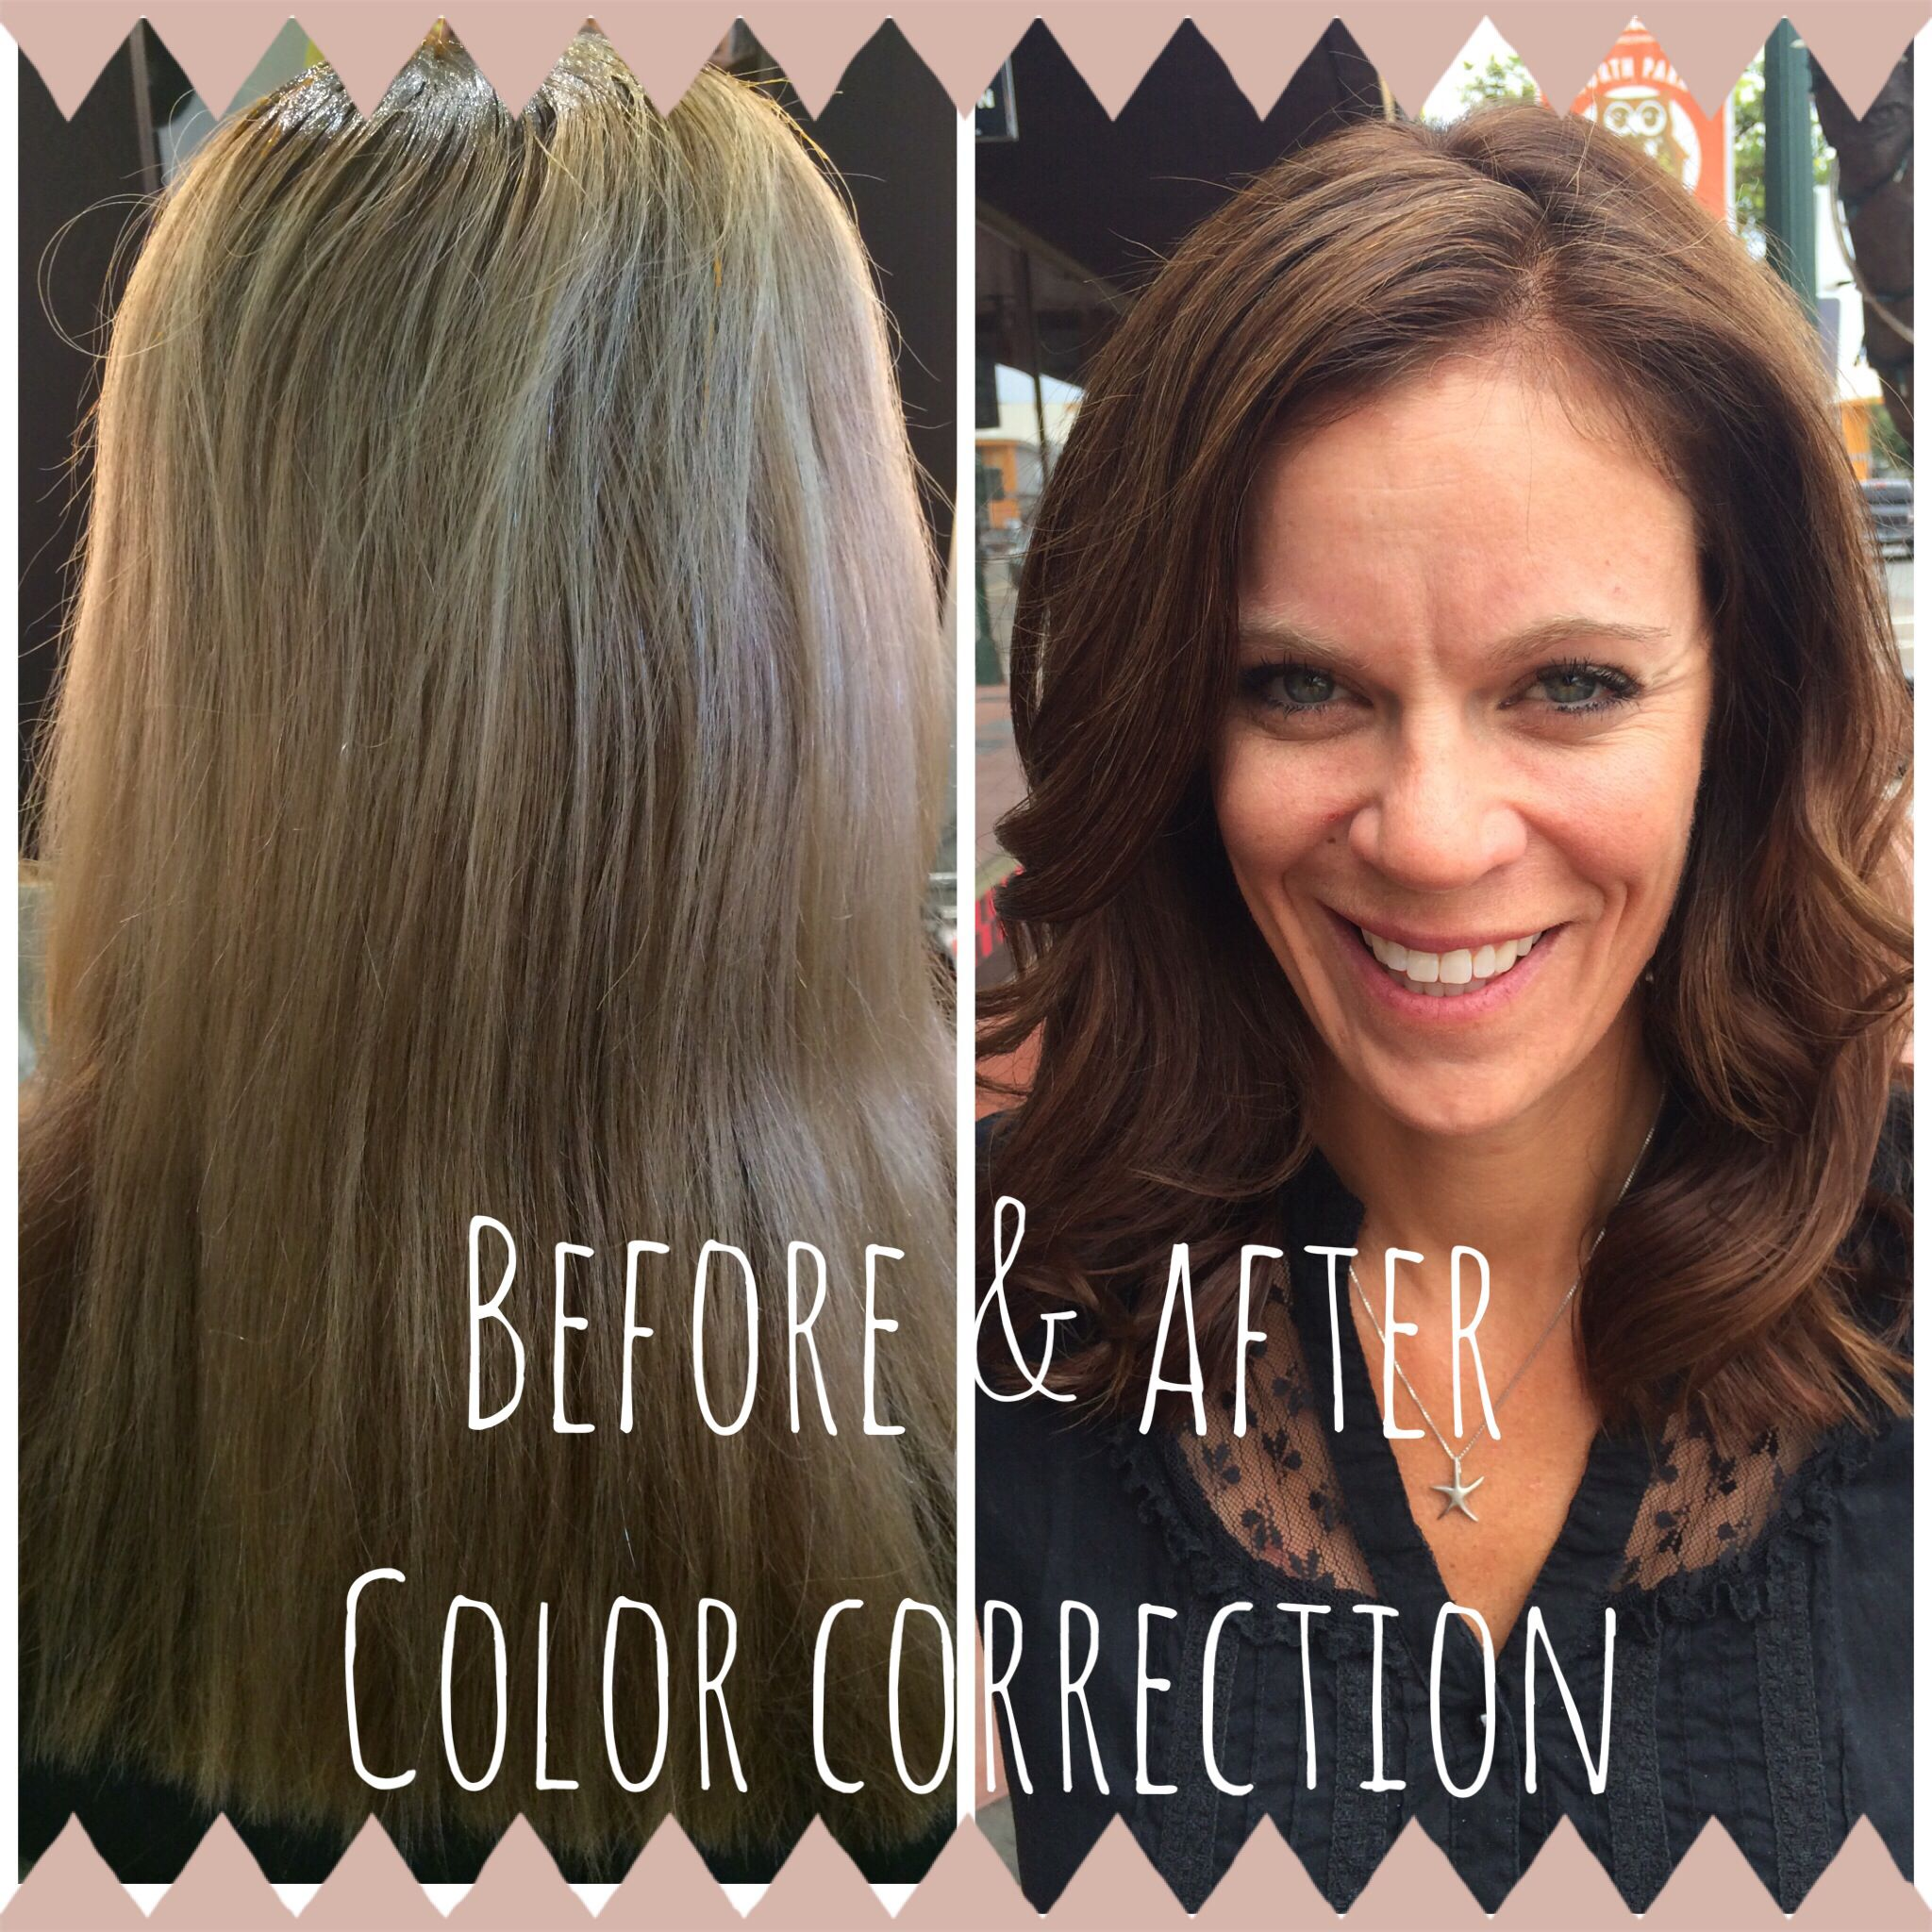 191451ca1da6a1 Color correction, back to natural, color touch, Wella hair, Wella life,